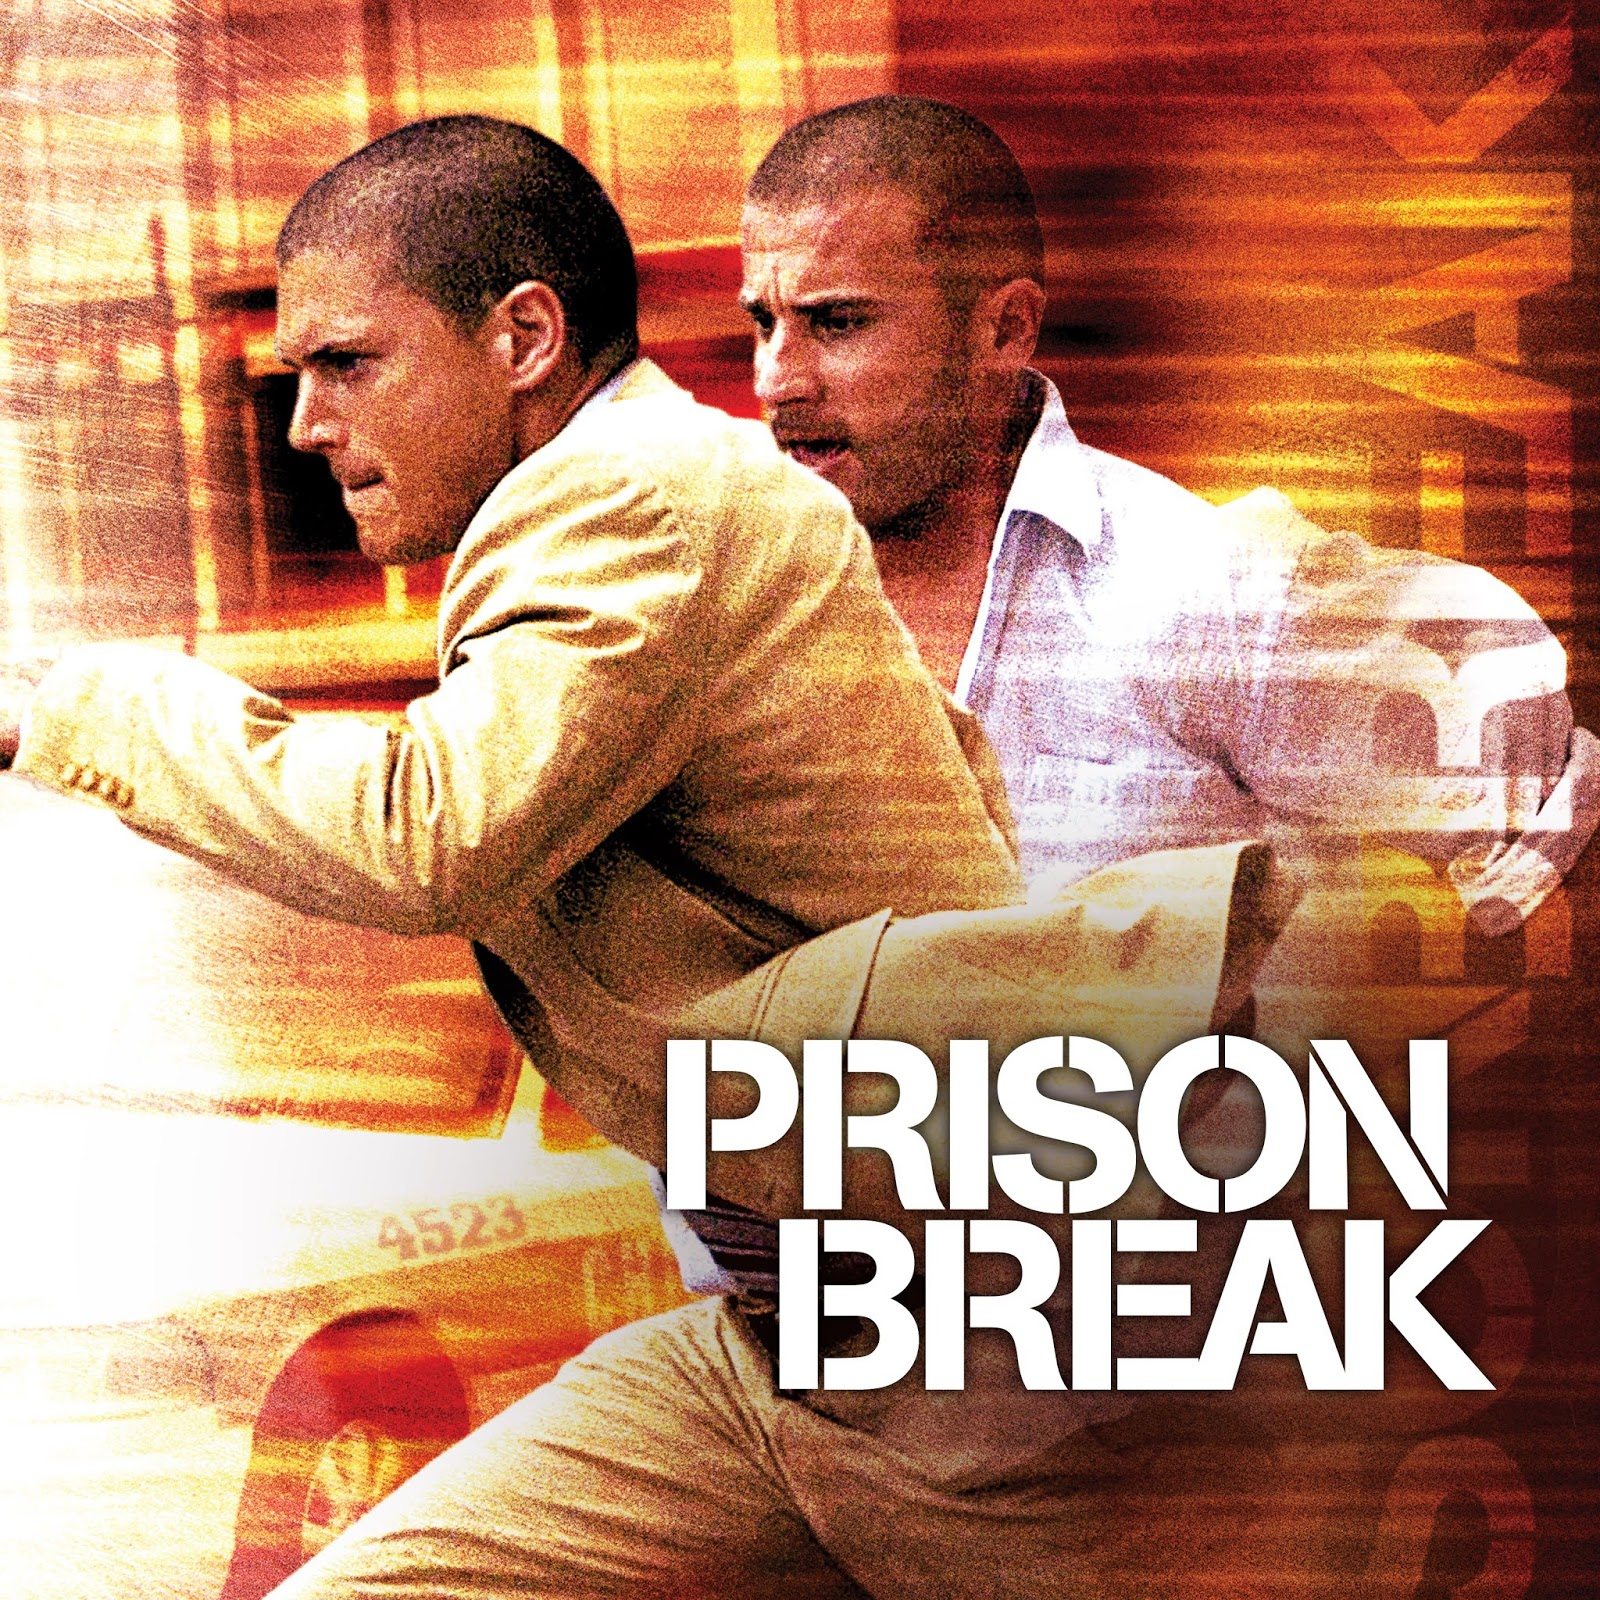 prison break tv series watch online